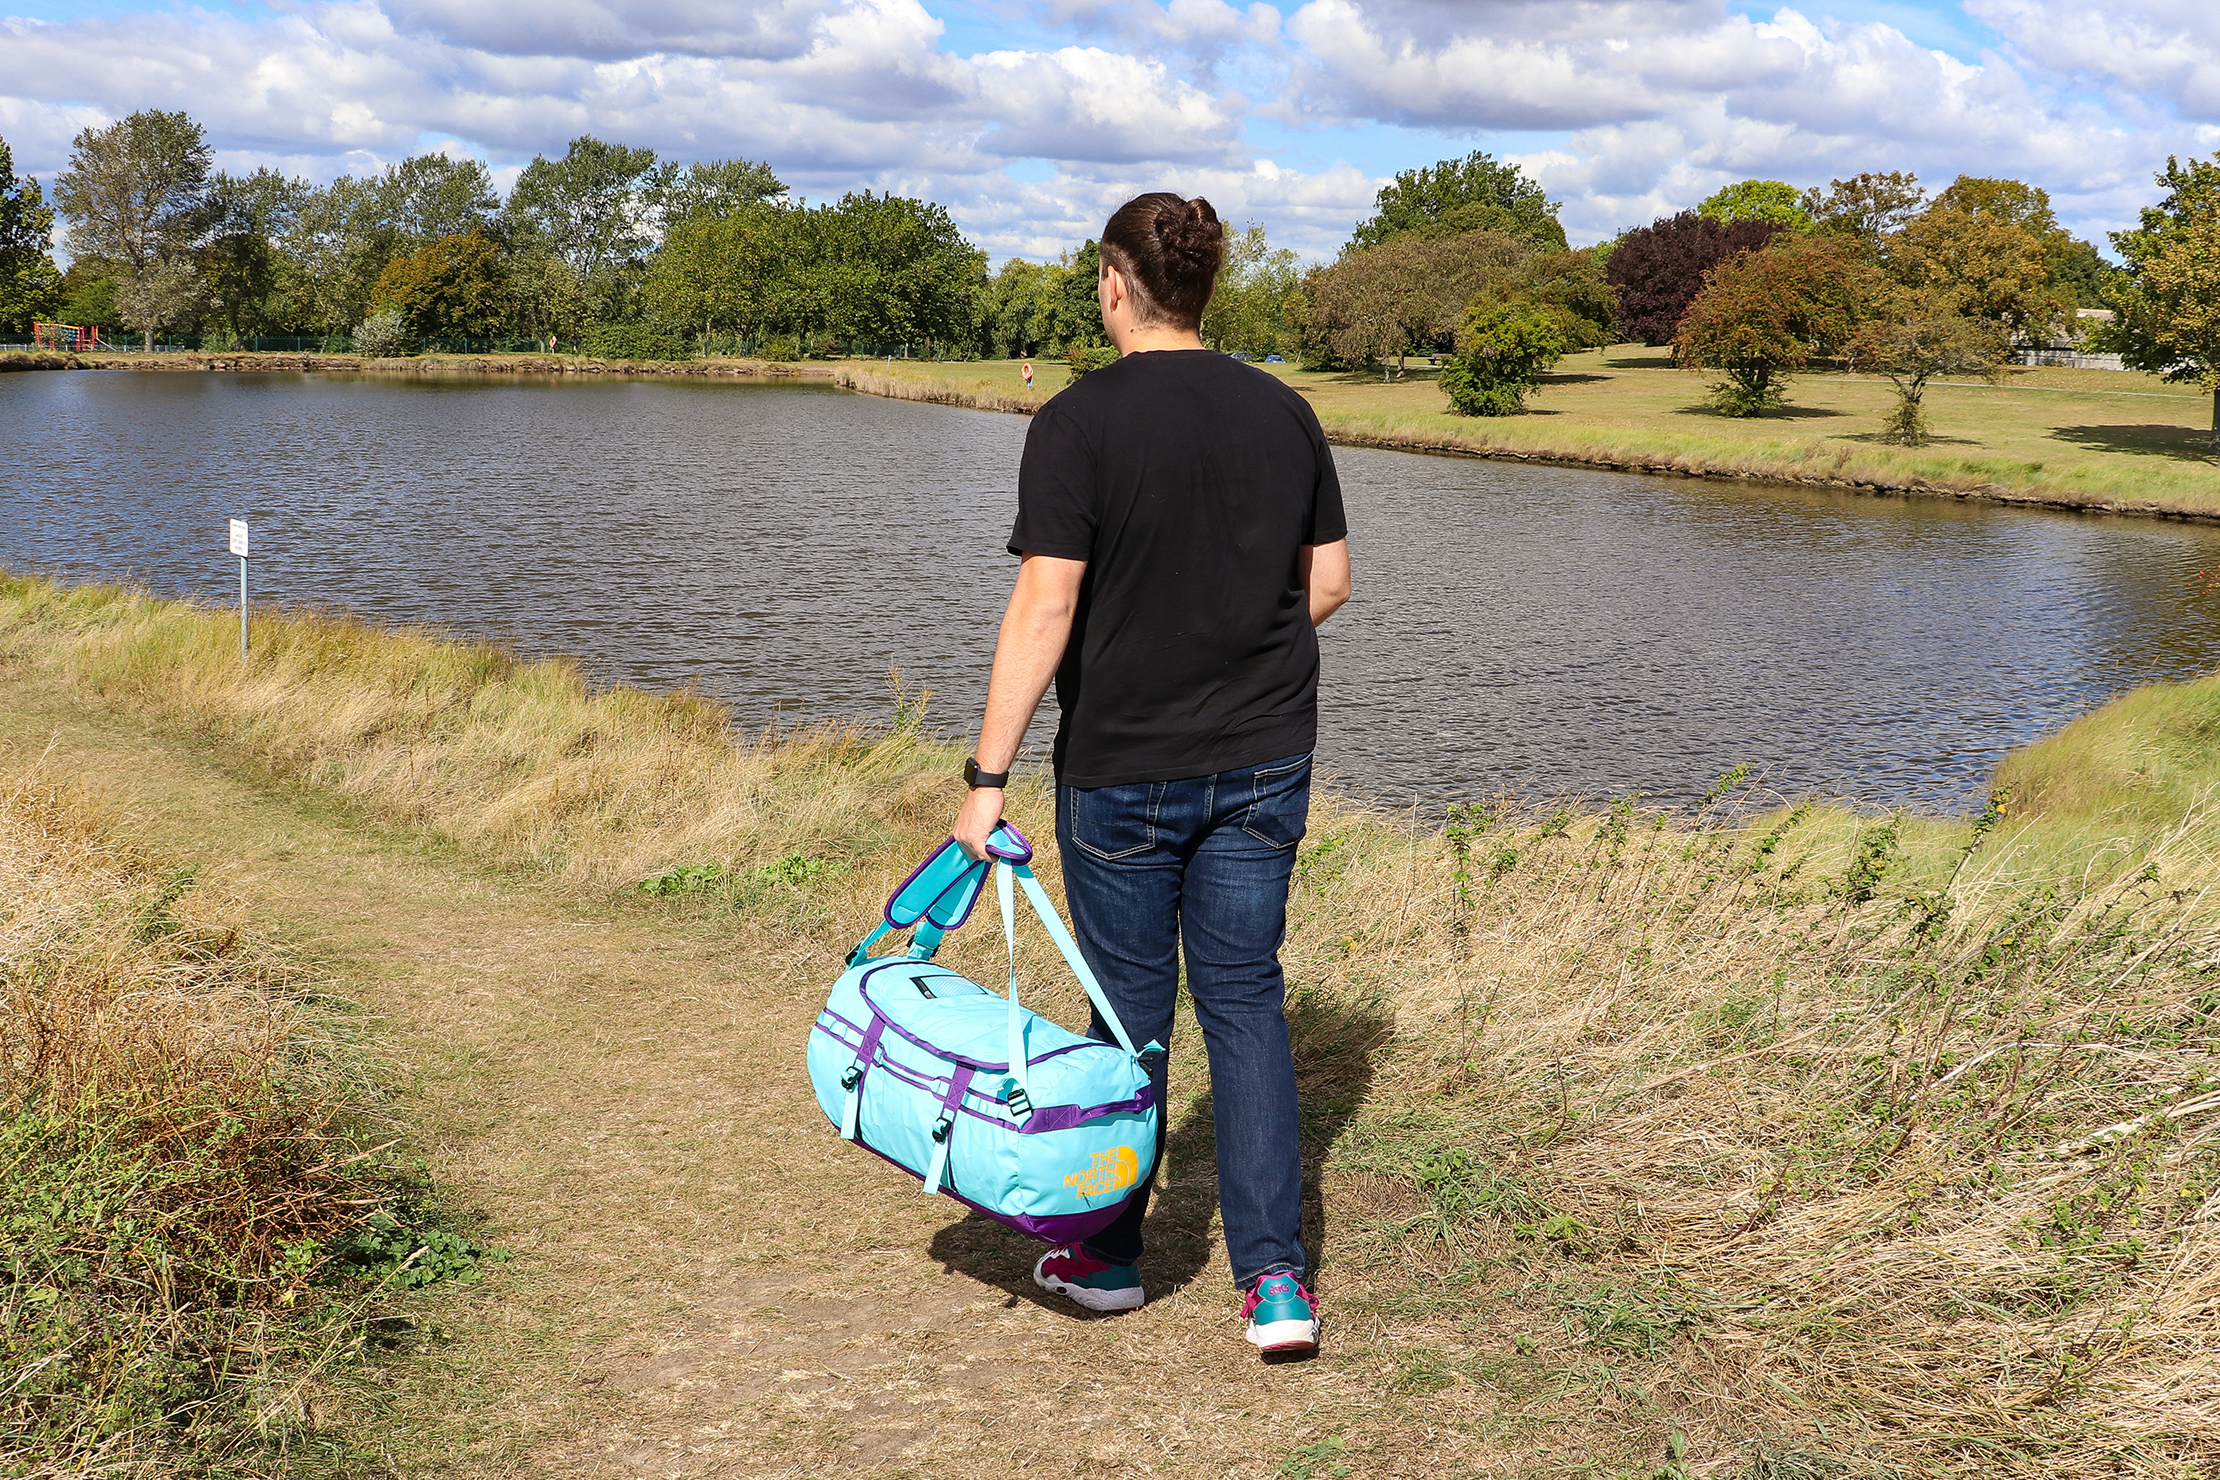 Carrying The North Face Base Camp Duffel As A Duffel In Essex England